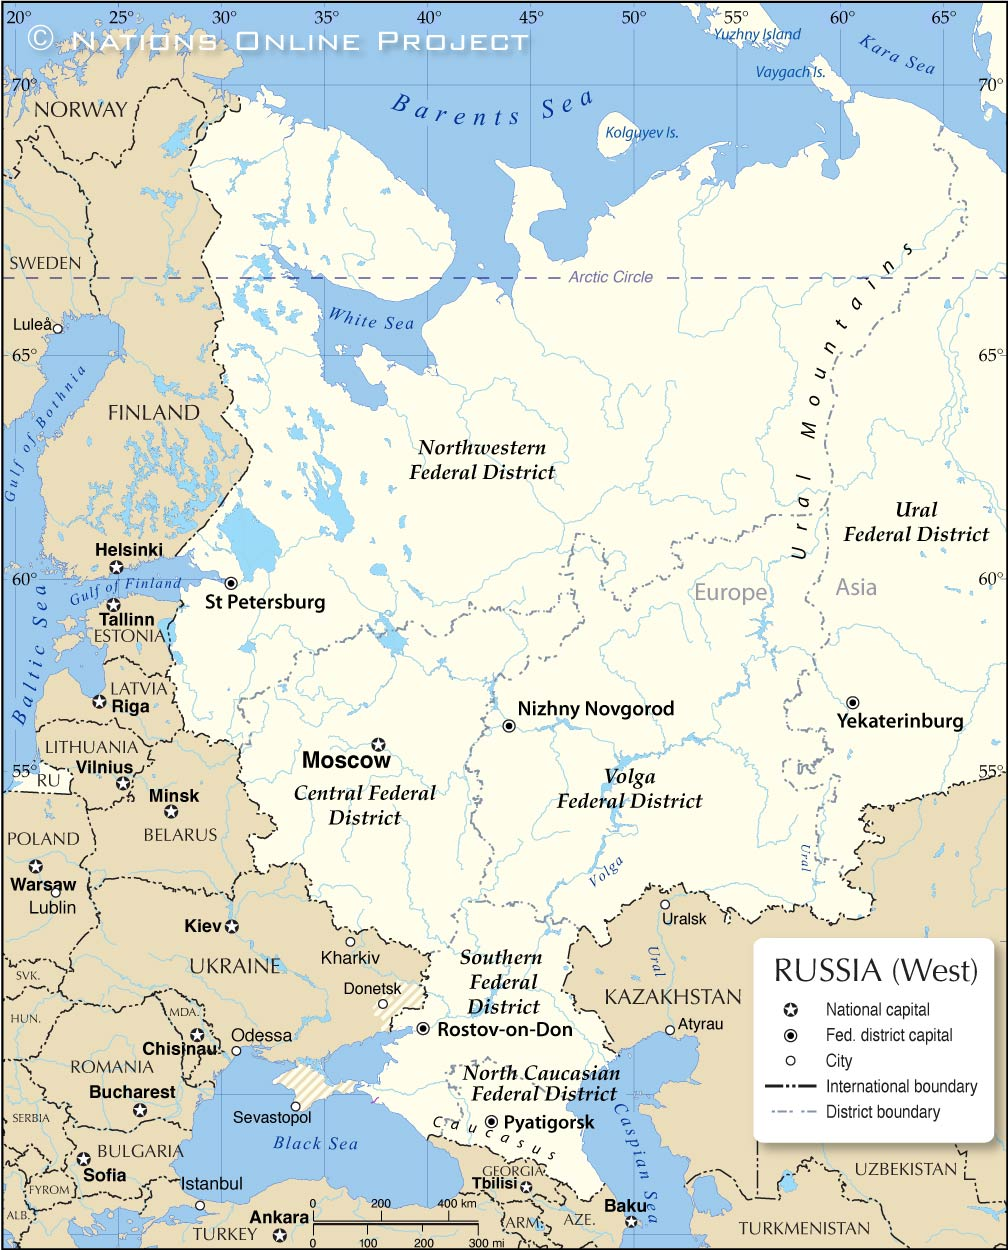 on this map the border between the ural federal district and the northwestern volga federal districts follows the europeasia border fairly well